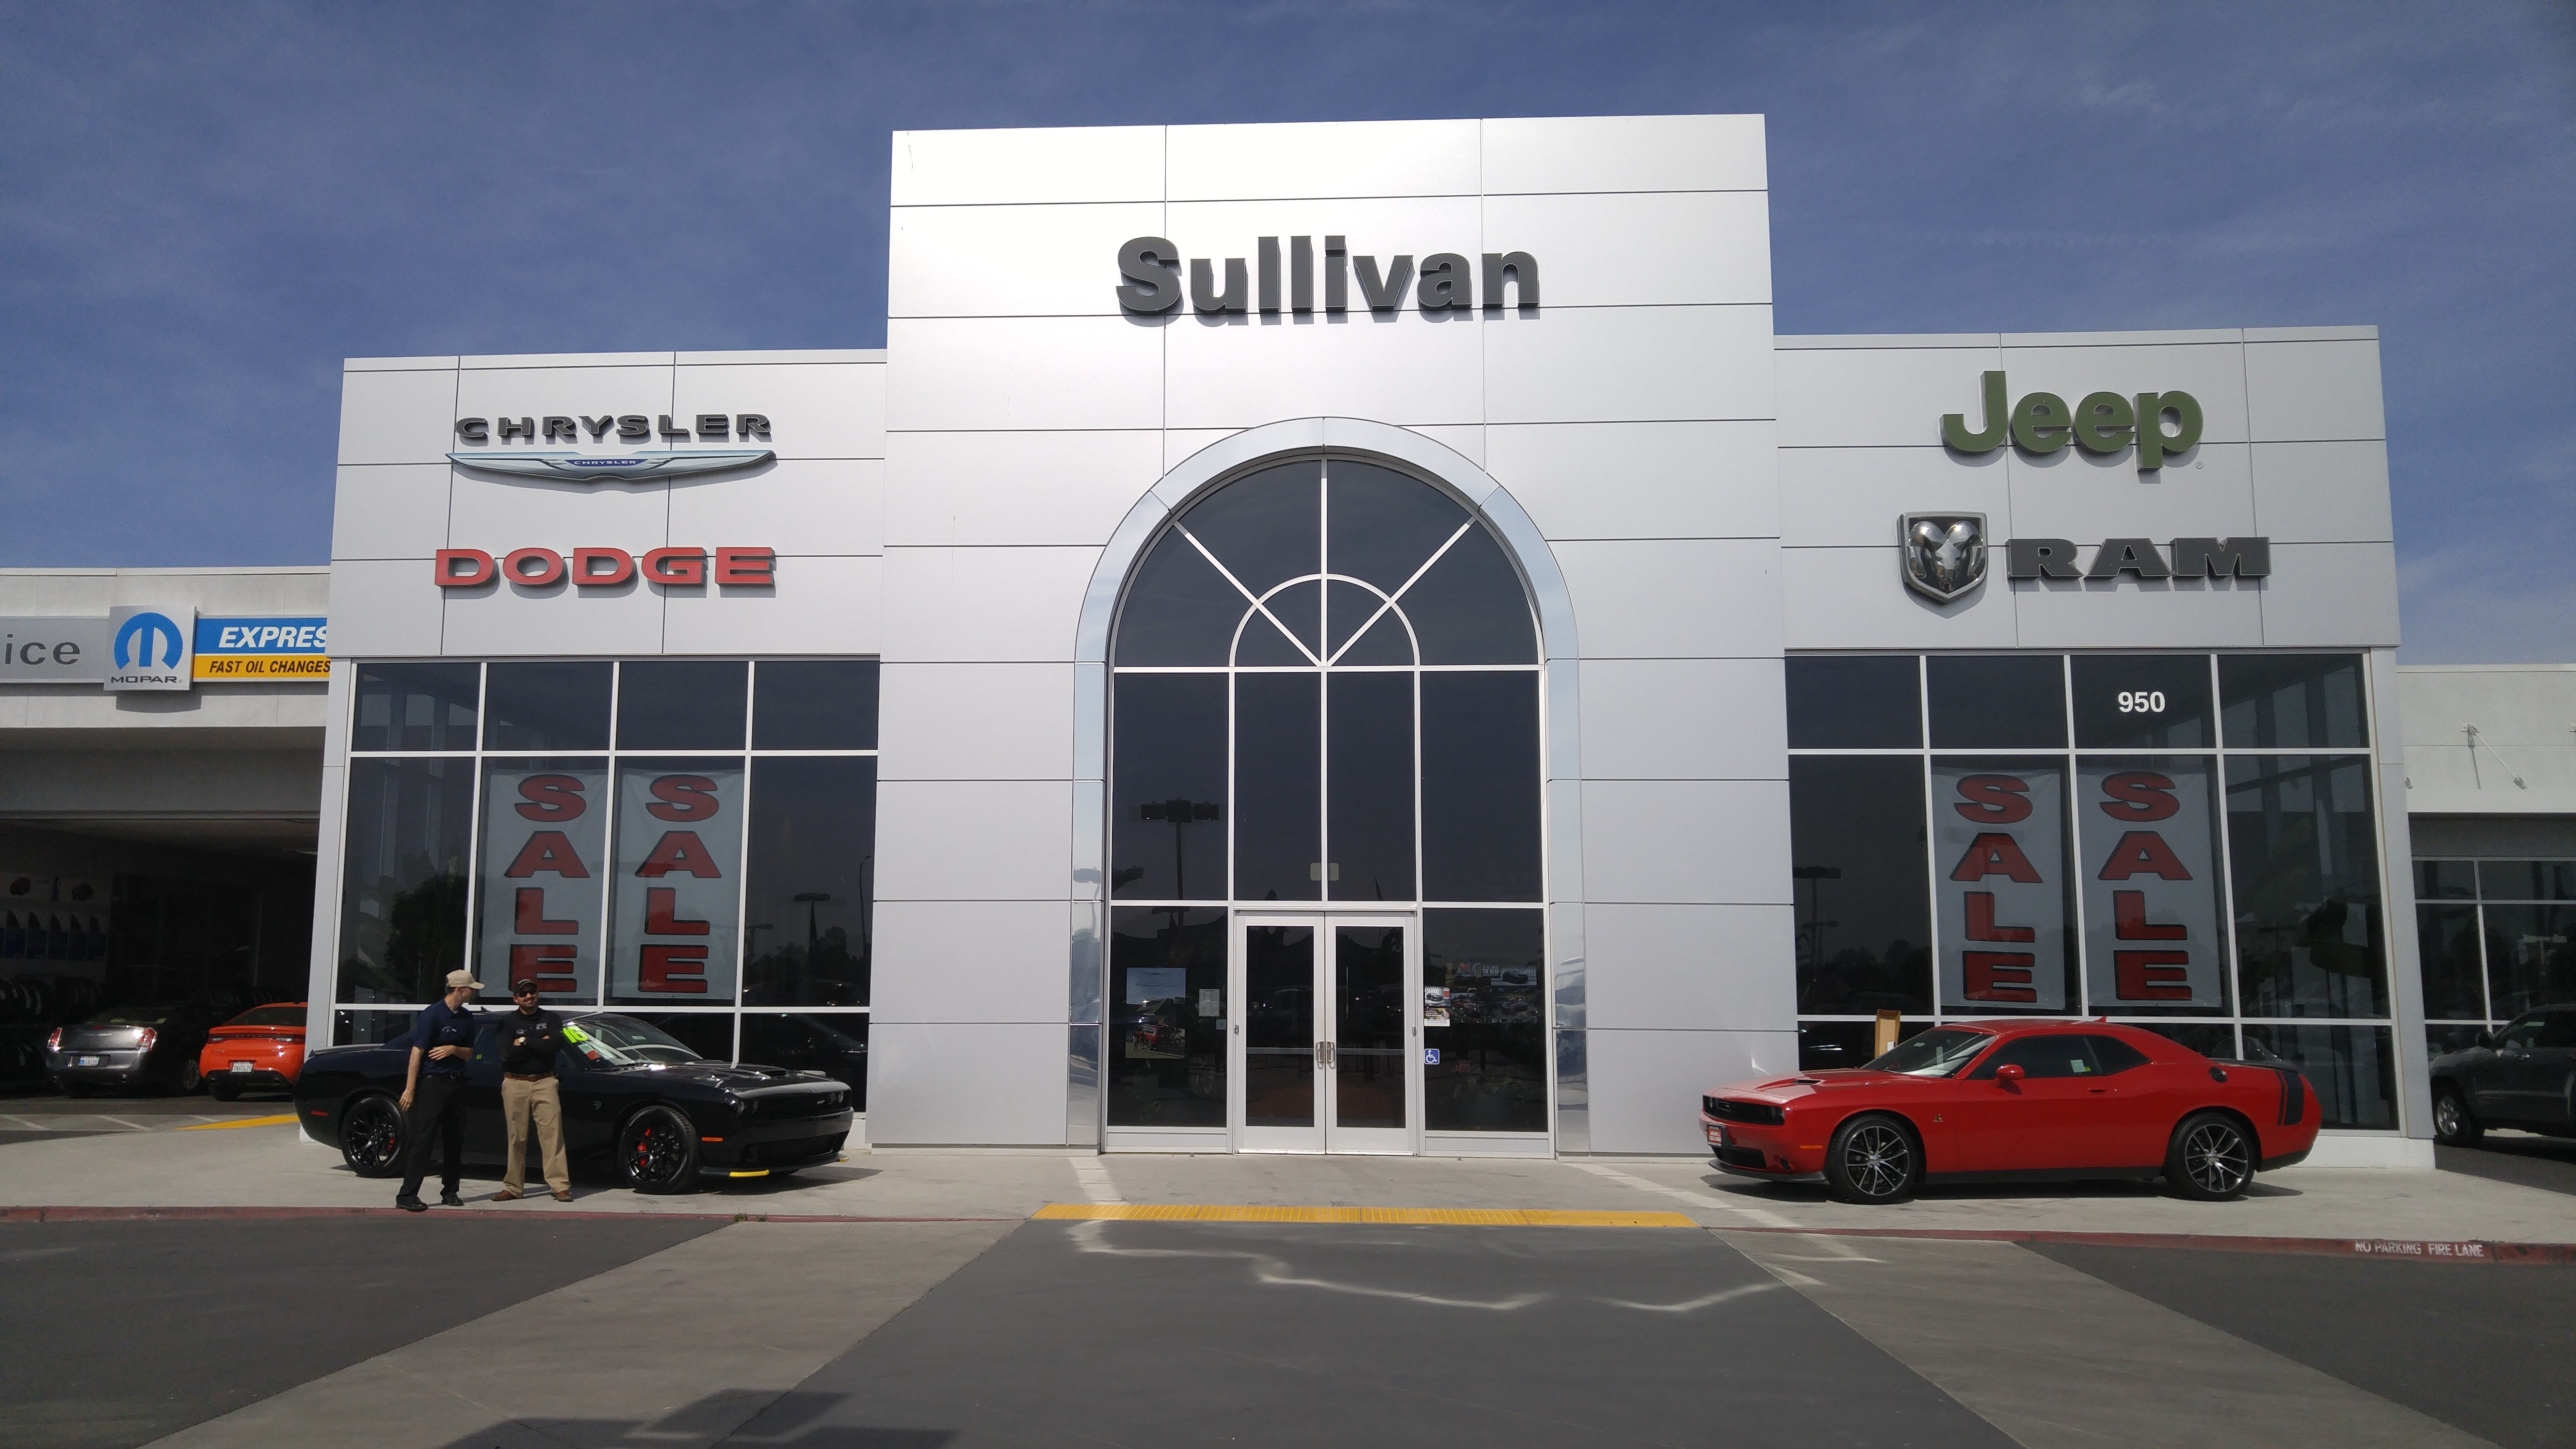 John L. Sullivan Chrysler Dodge Jeep Ram 950 Harter Pkwy, Yuba City